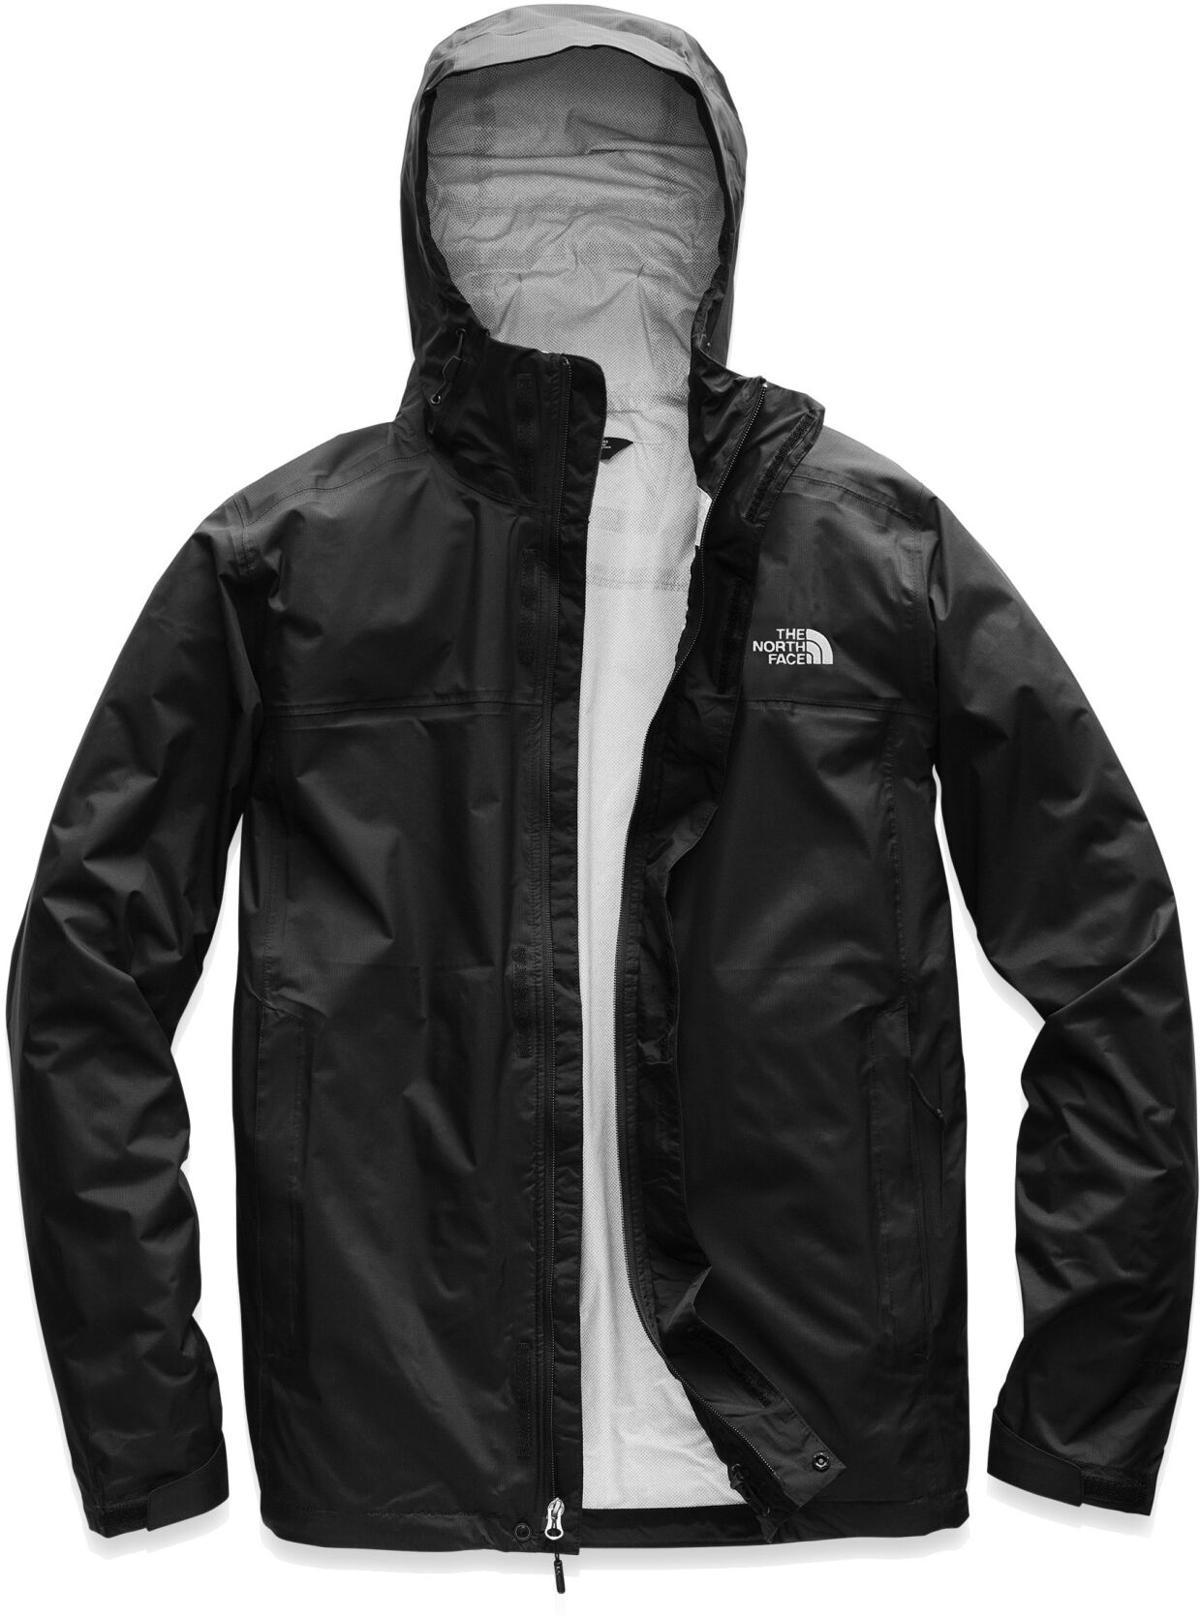 The North Face Venture Rain Jacket